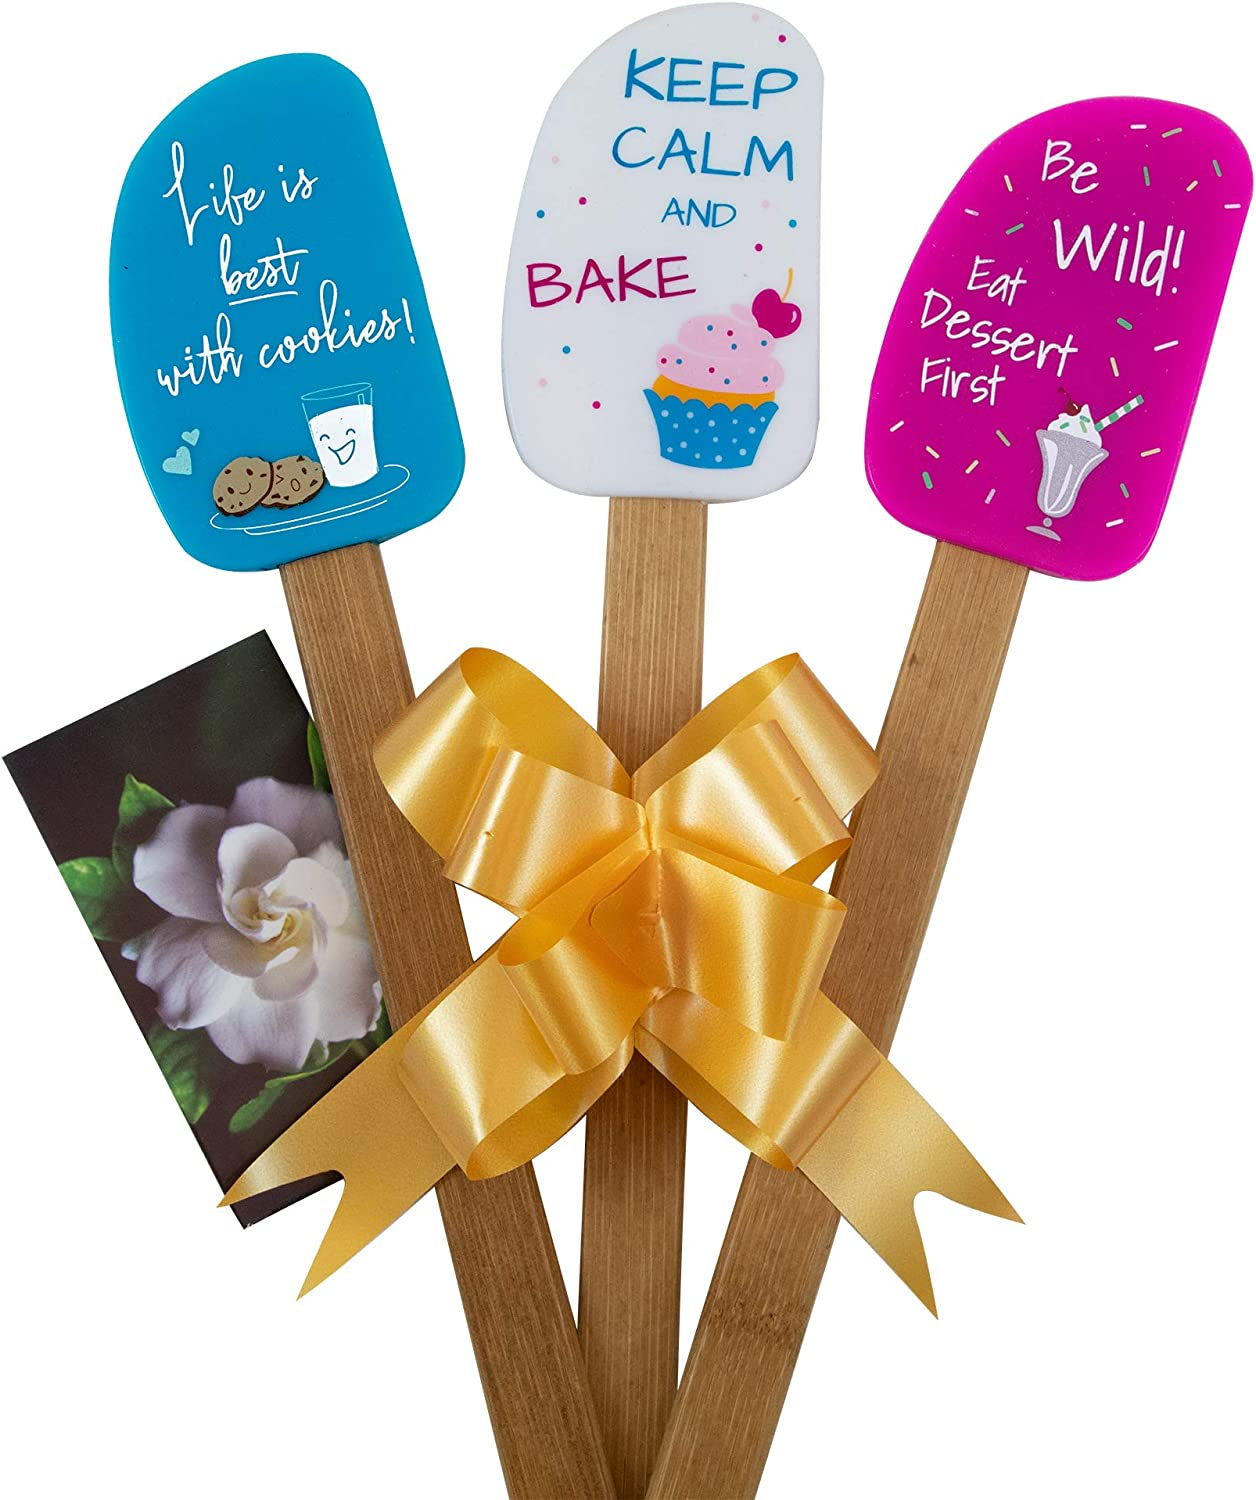 3-piece fun silicone spatula gift set.